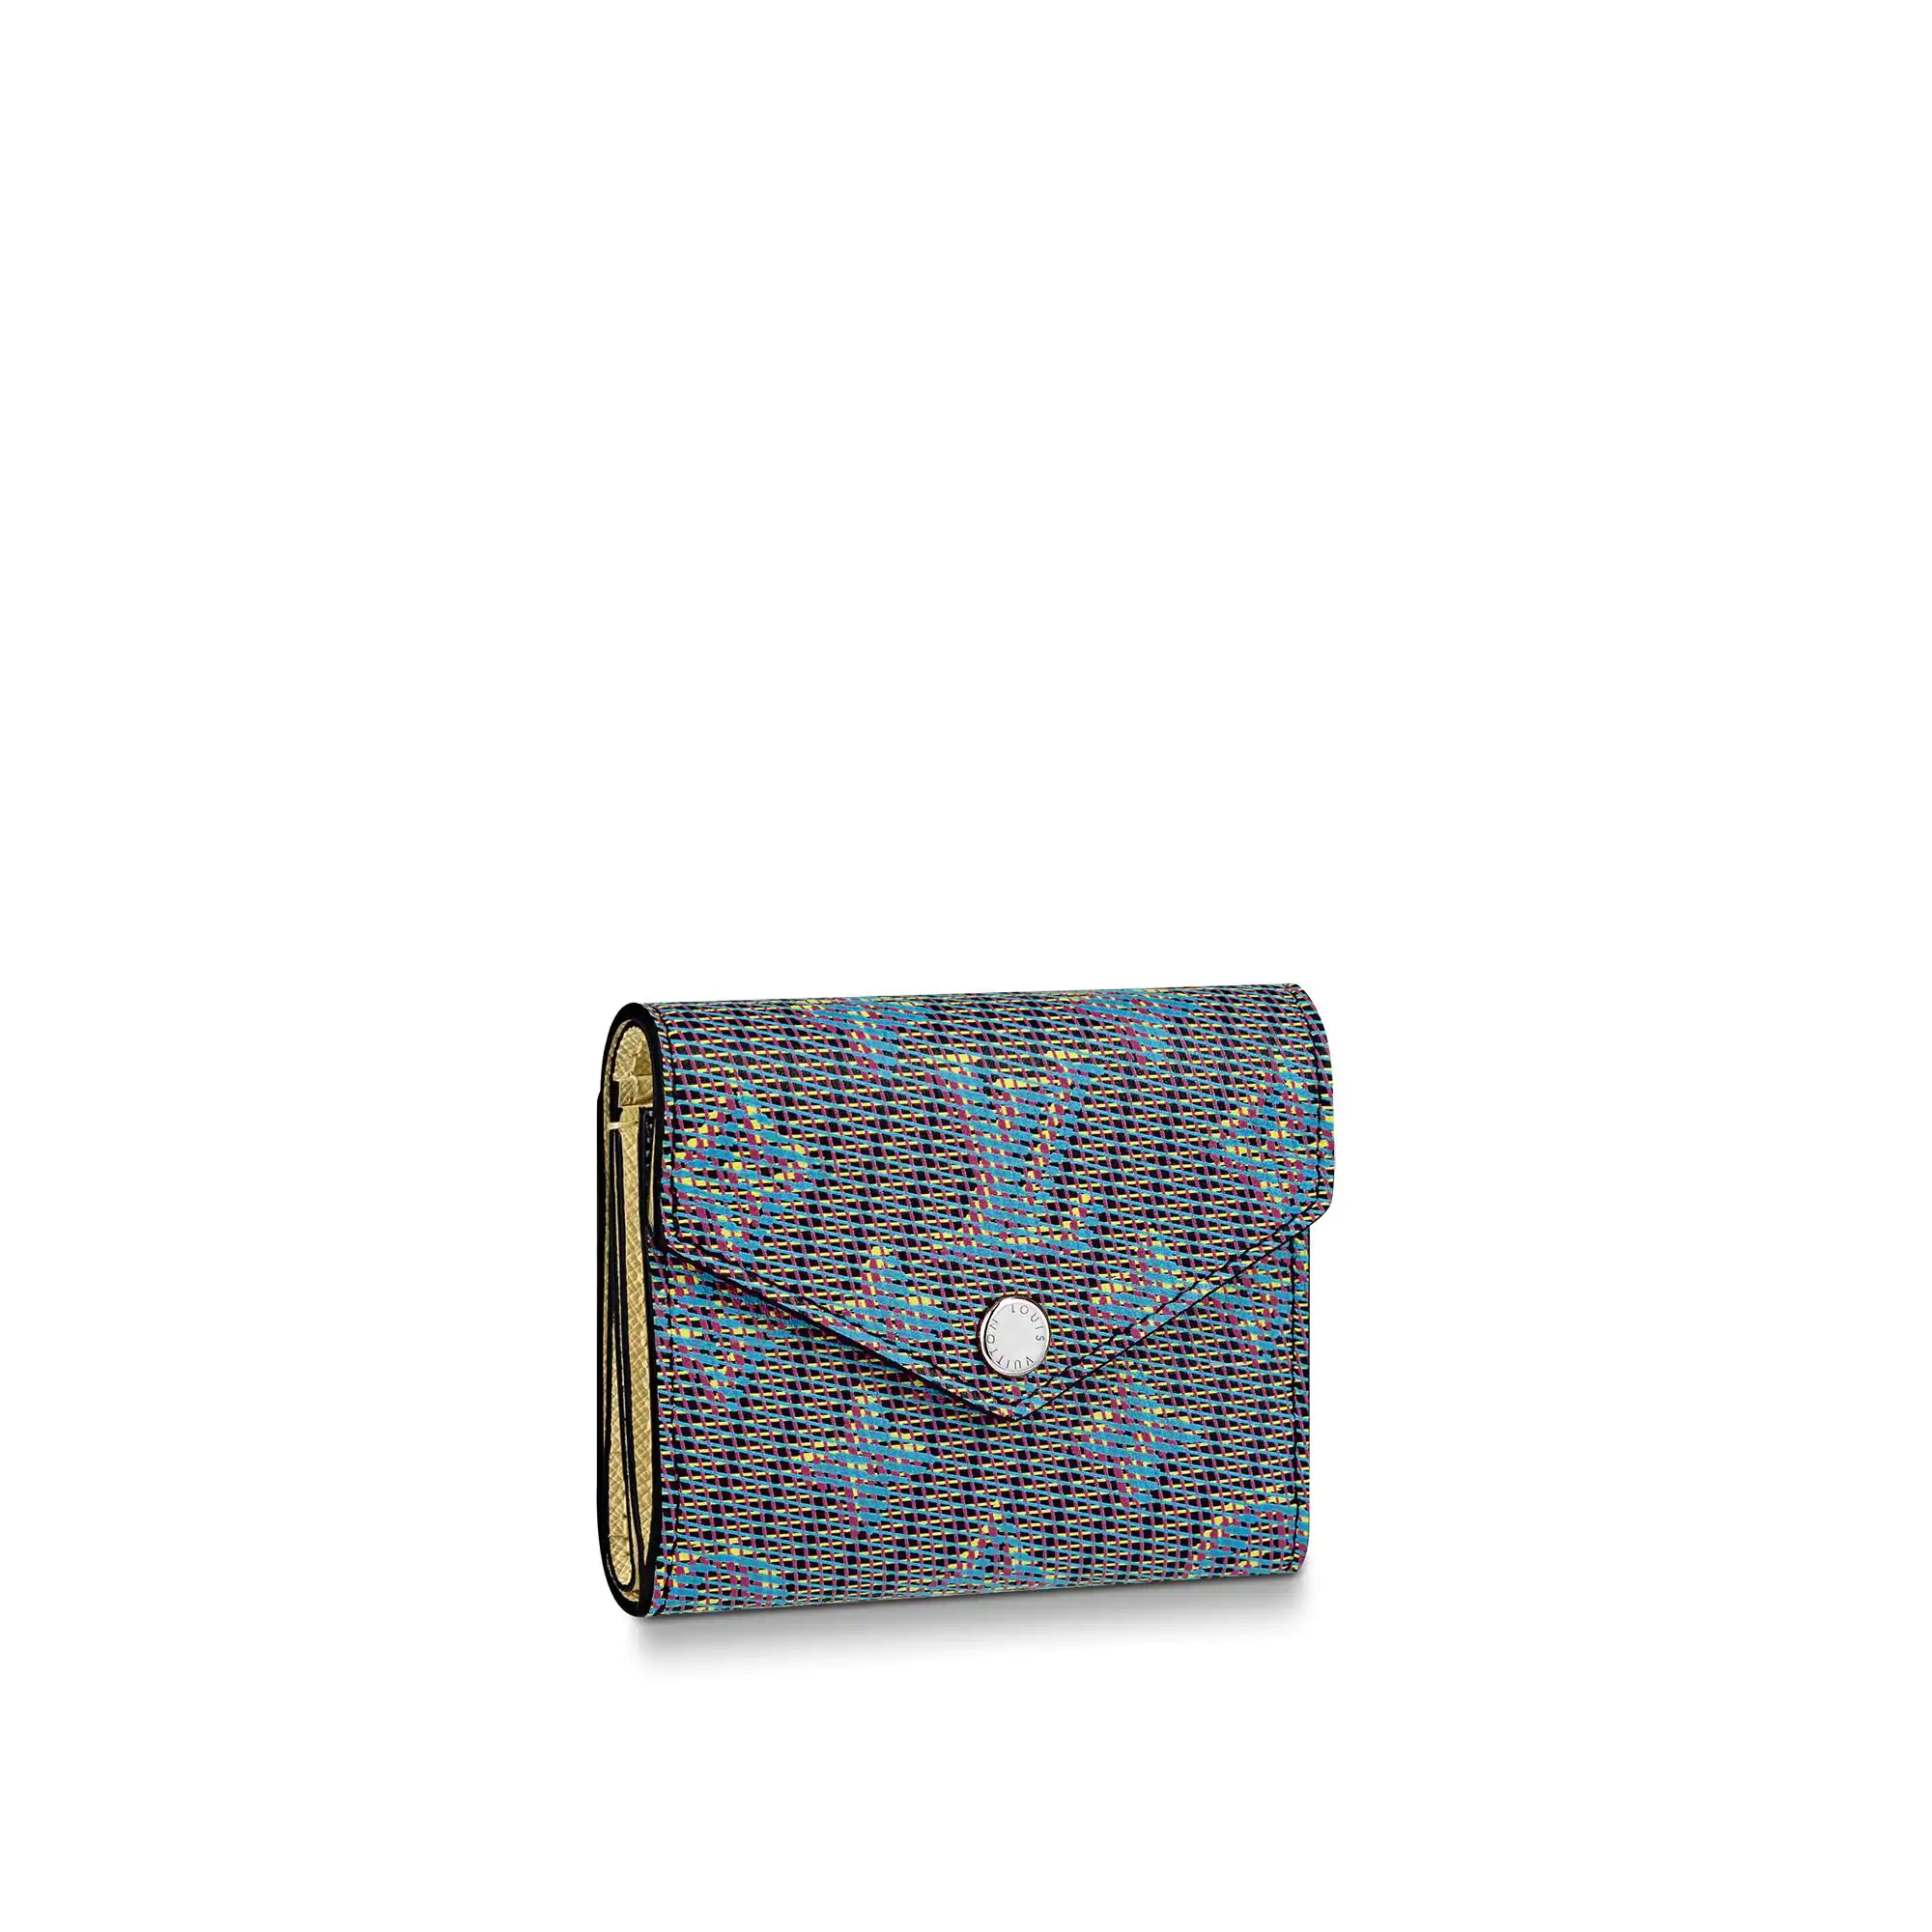 Louis Vuitton Damier LV Pop Zoe Flap Wallet N60282 Blue